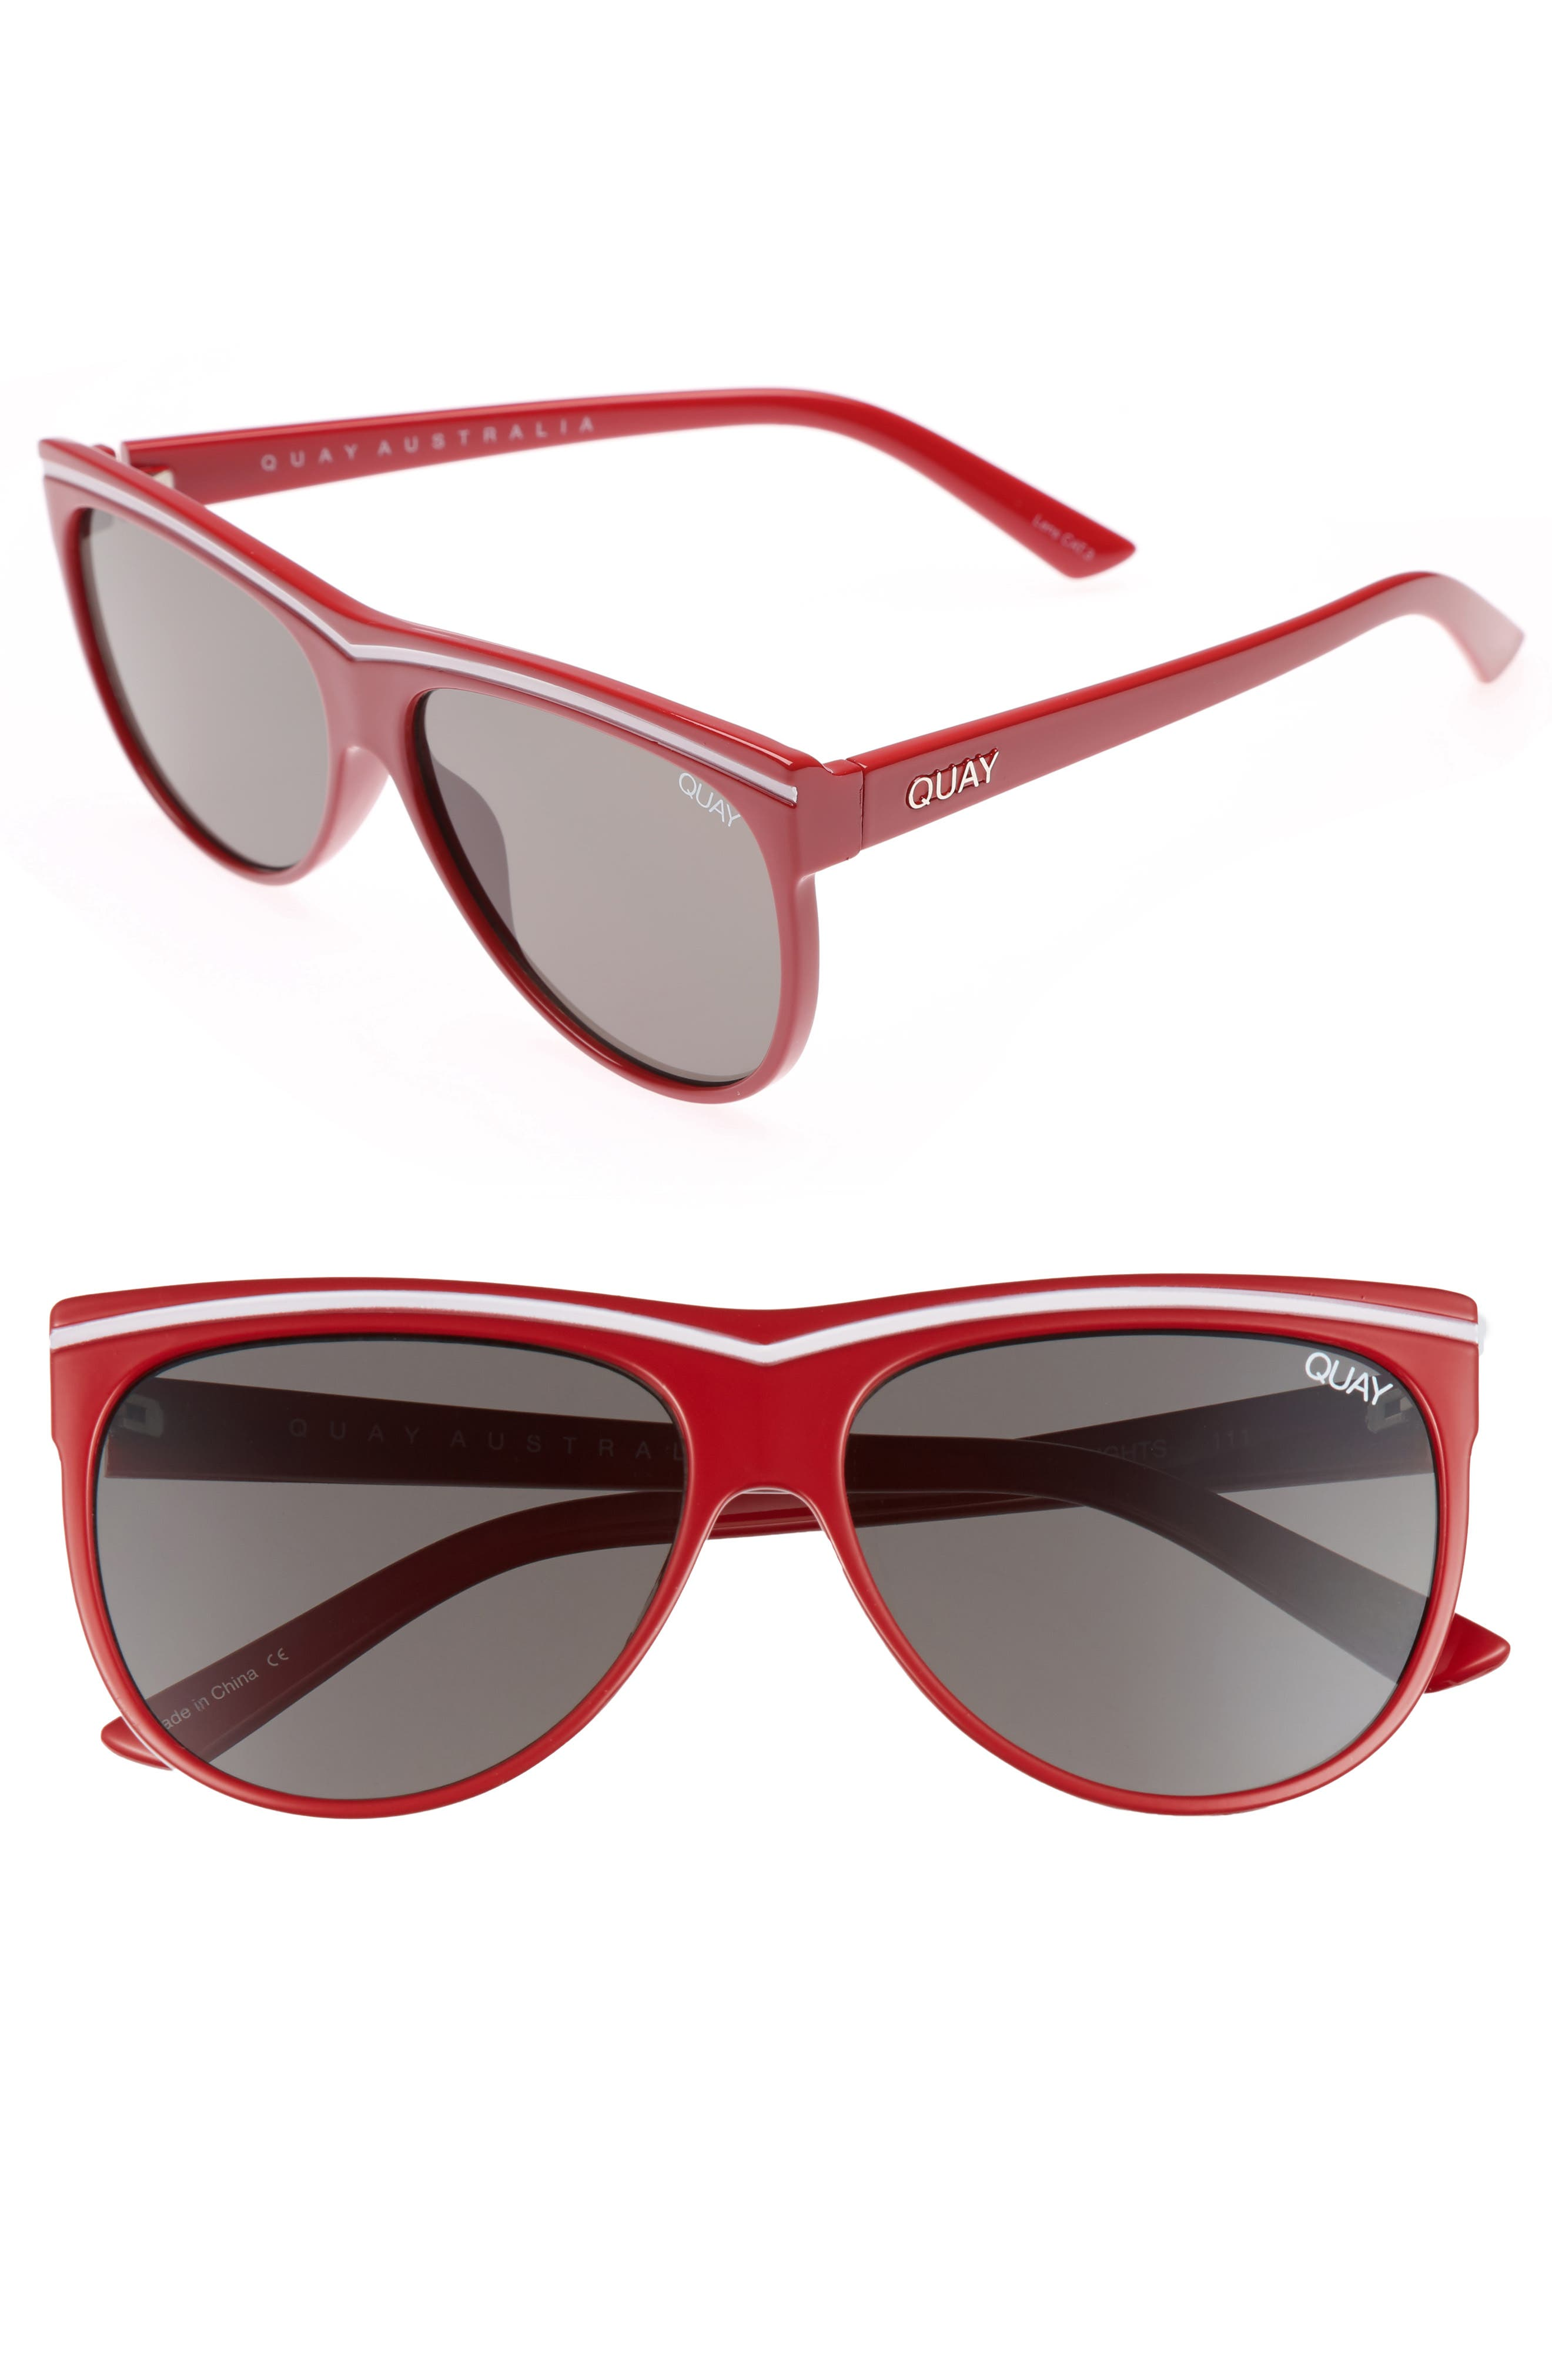 Hollywood Nights 62mm Sunglasses,                         Main,                         color, Red Smoke